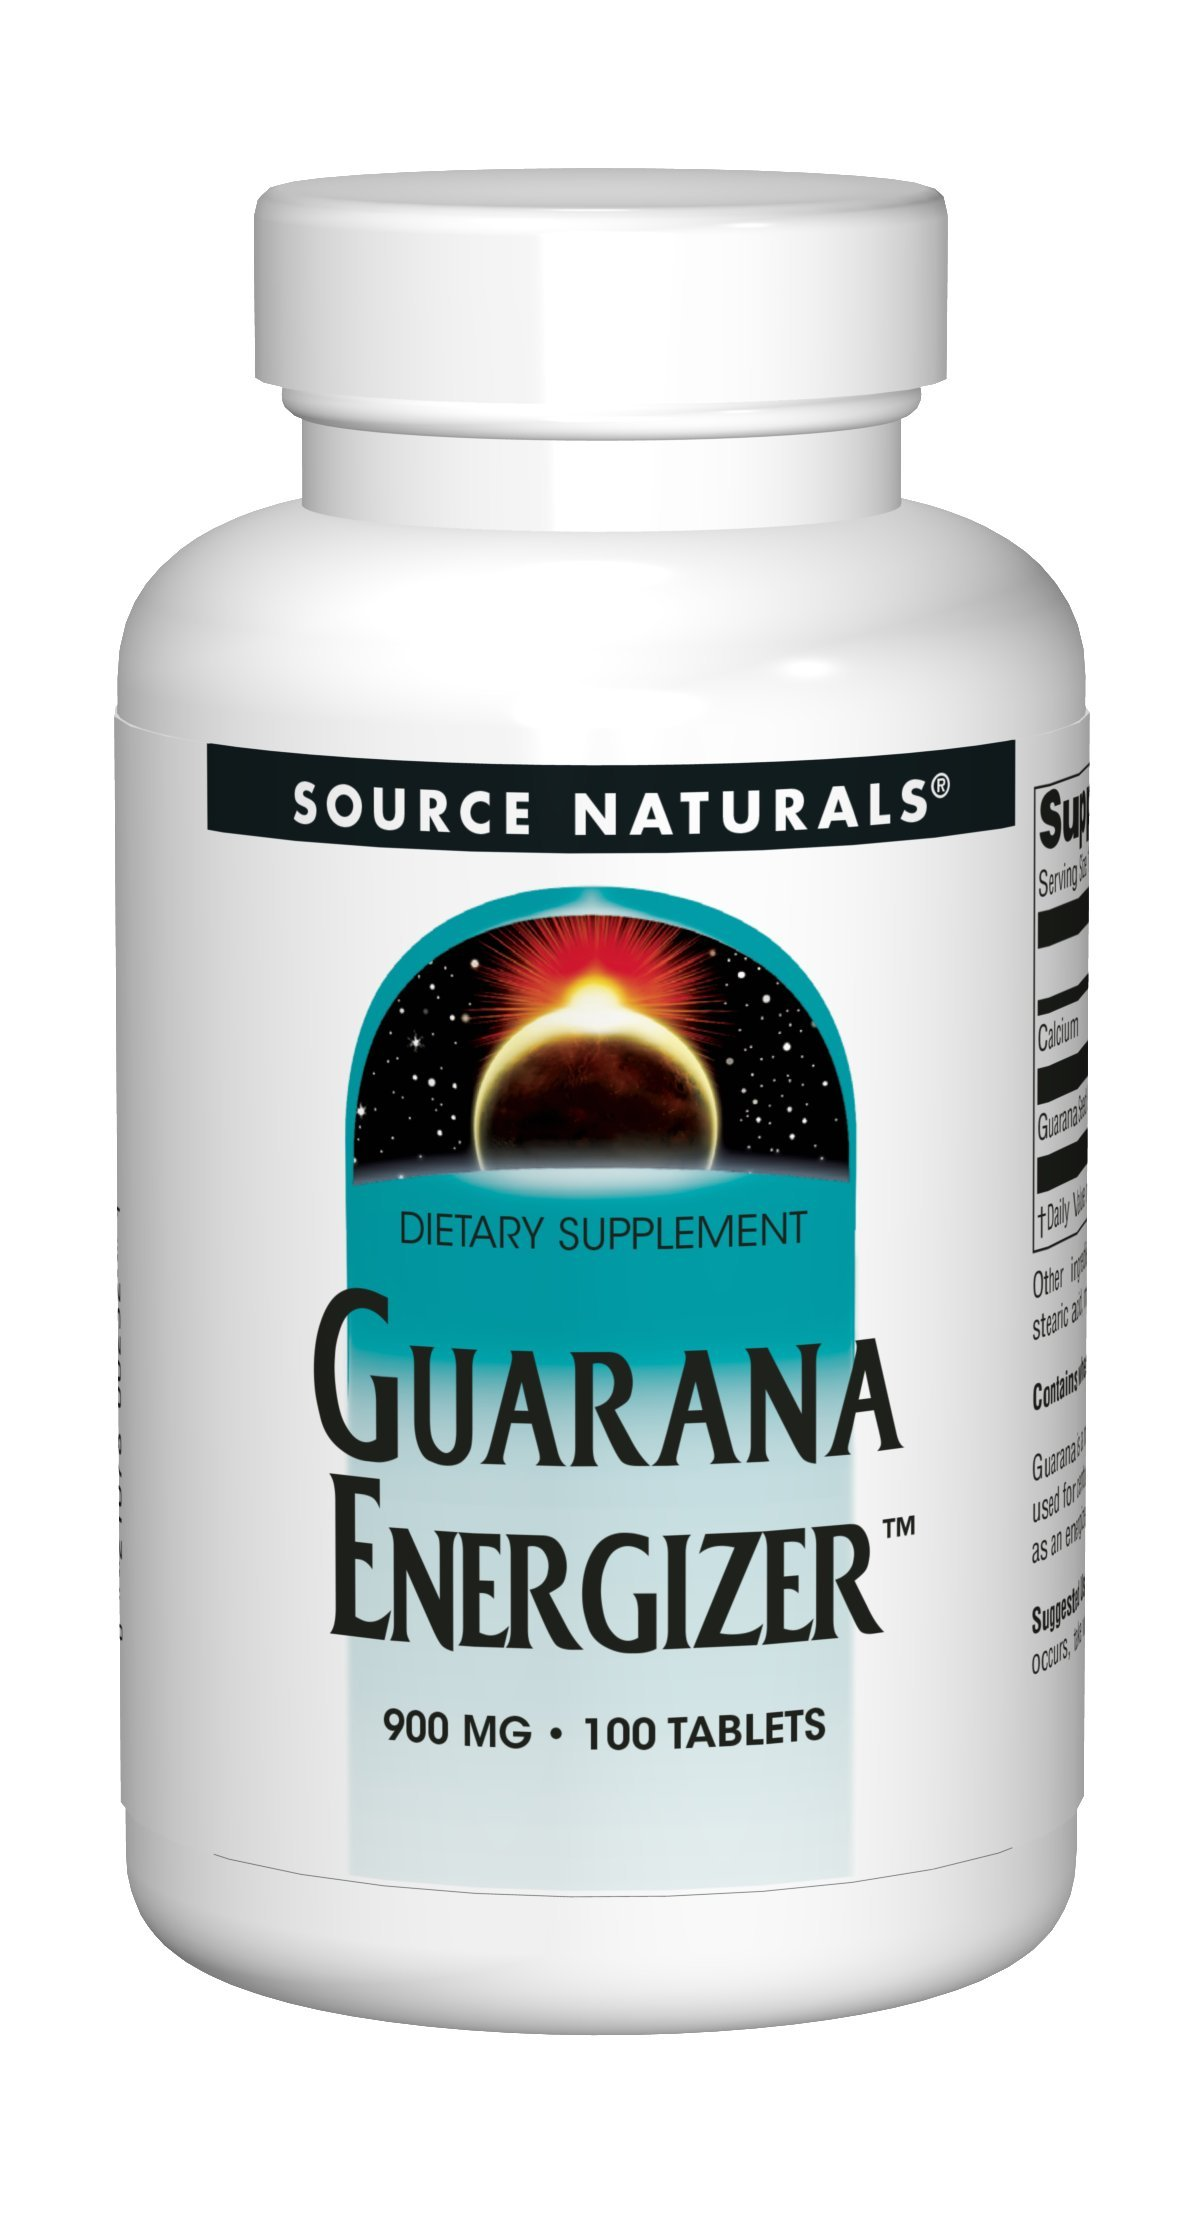 Source Naturals Guarana Energizer 900mg Pure Brazilian Herbal Caffeine Supplement - Natural, Slow Release Of Steady Energy - With Calcium - 100 Tablets